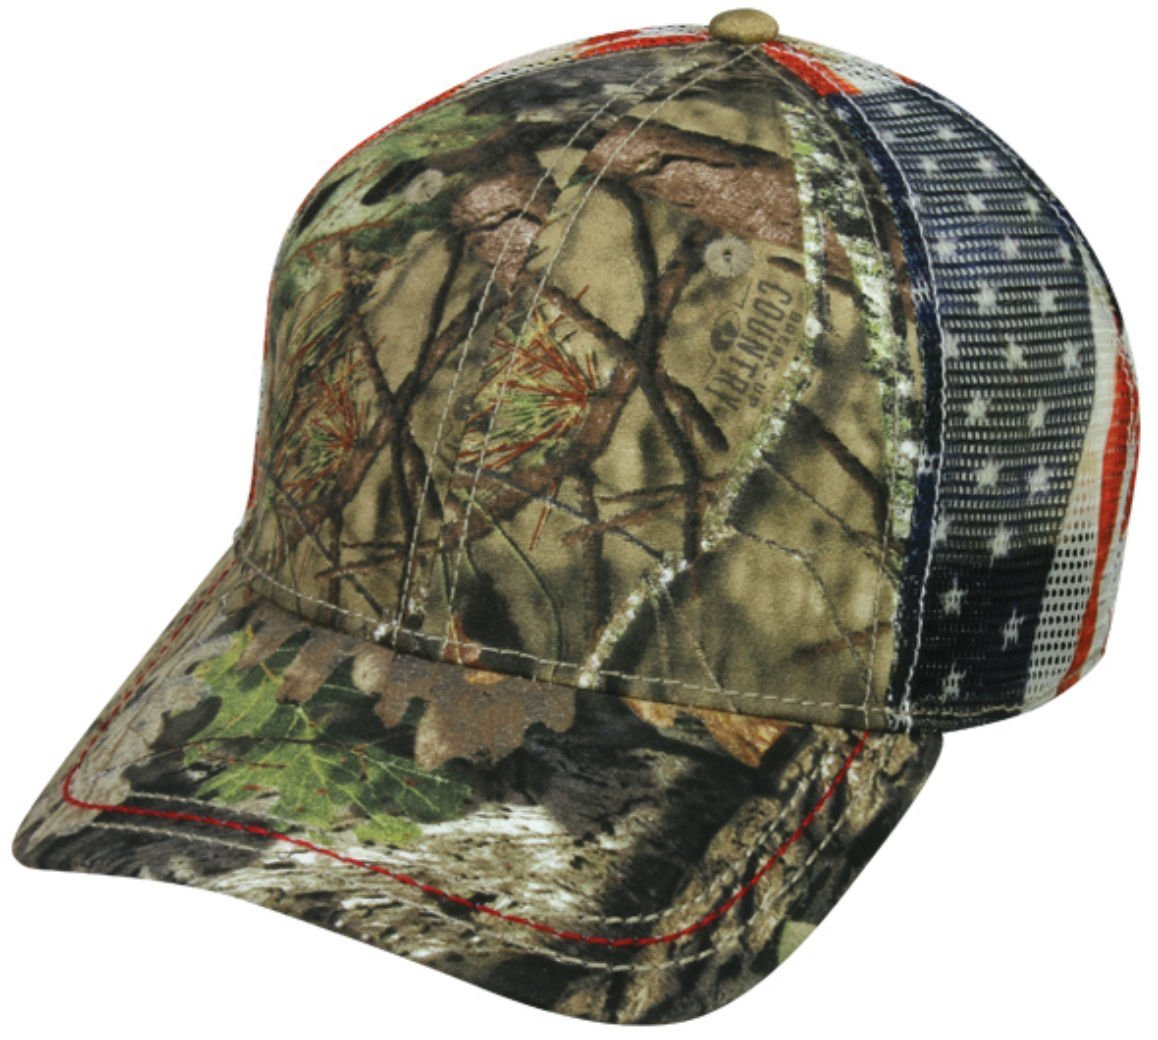 Mossy Oak Country Camo Americana Mesh Back Hunting Hat by Outdoor Cap